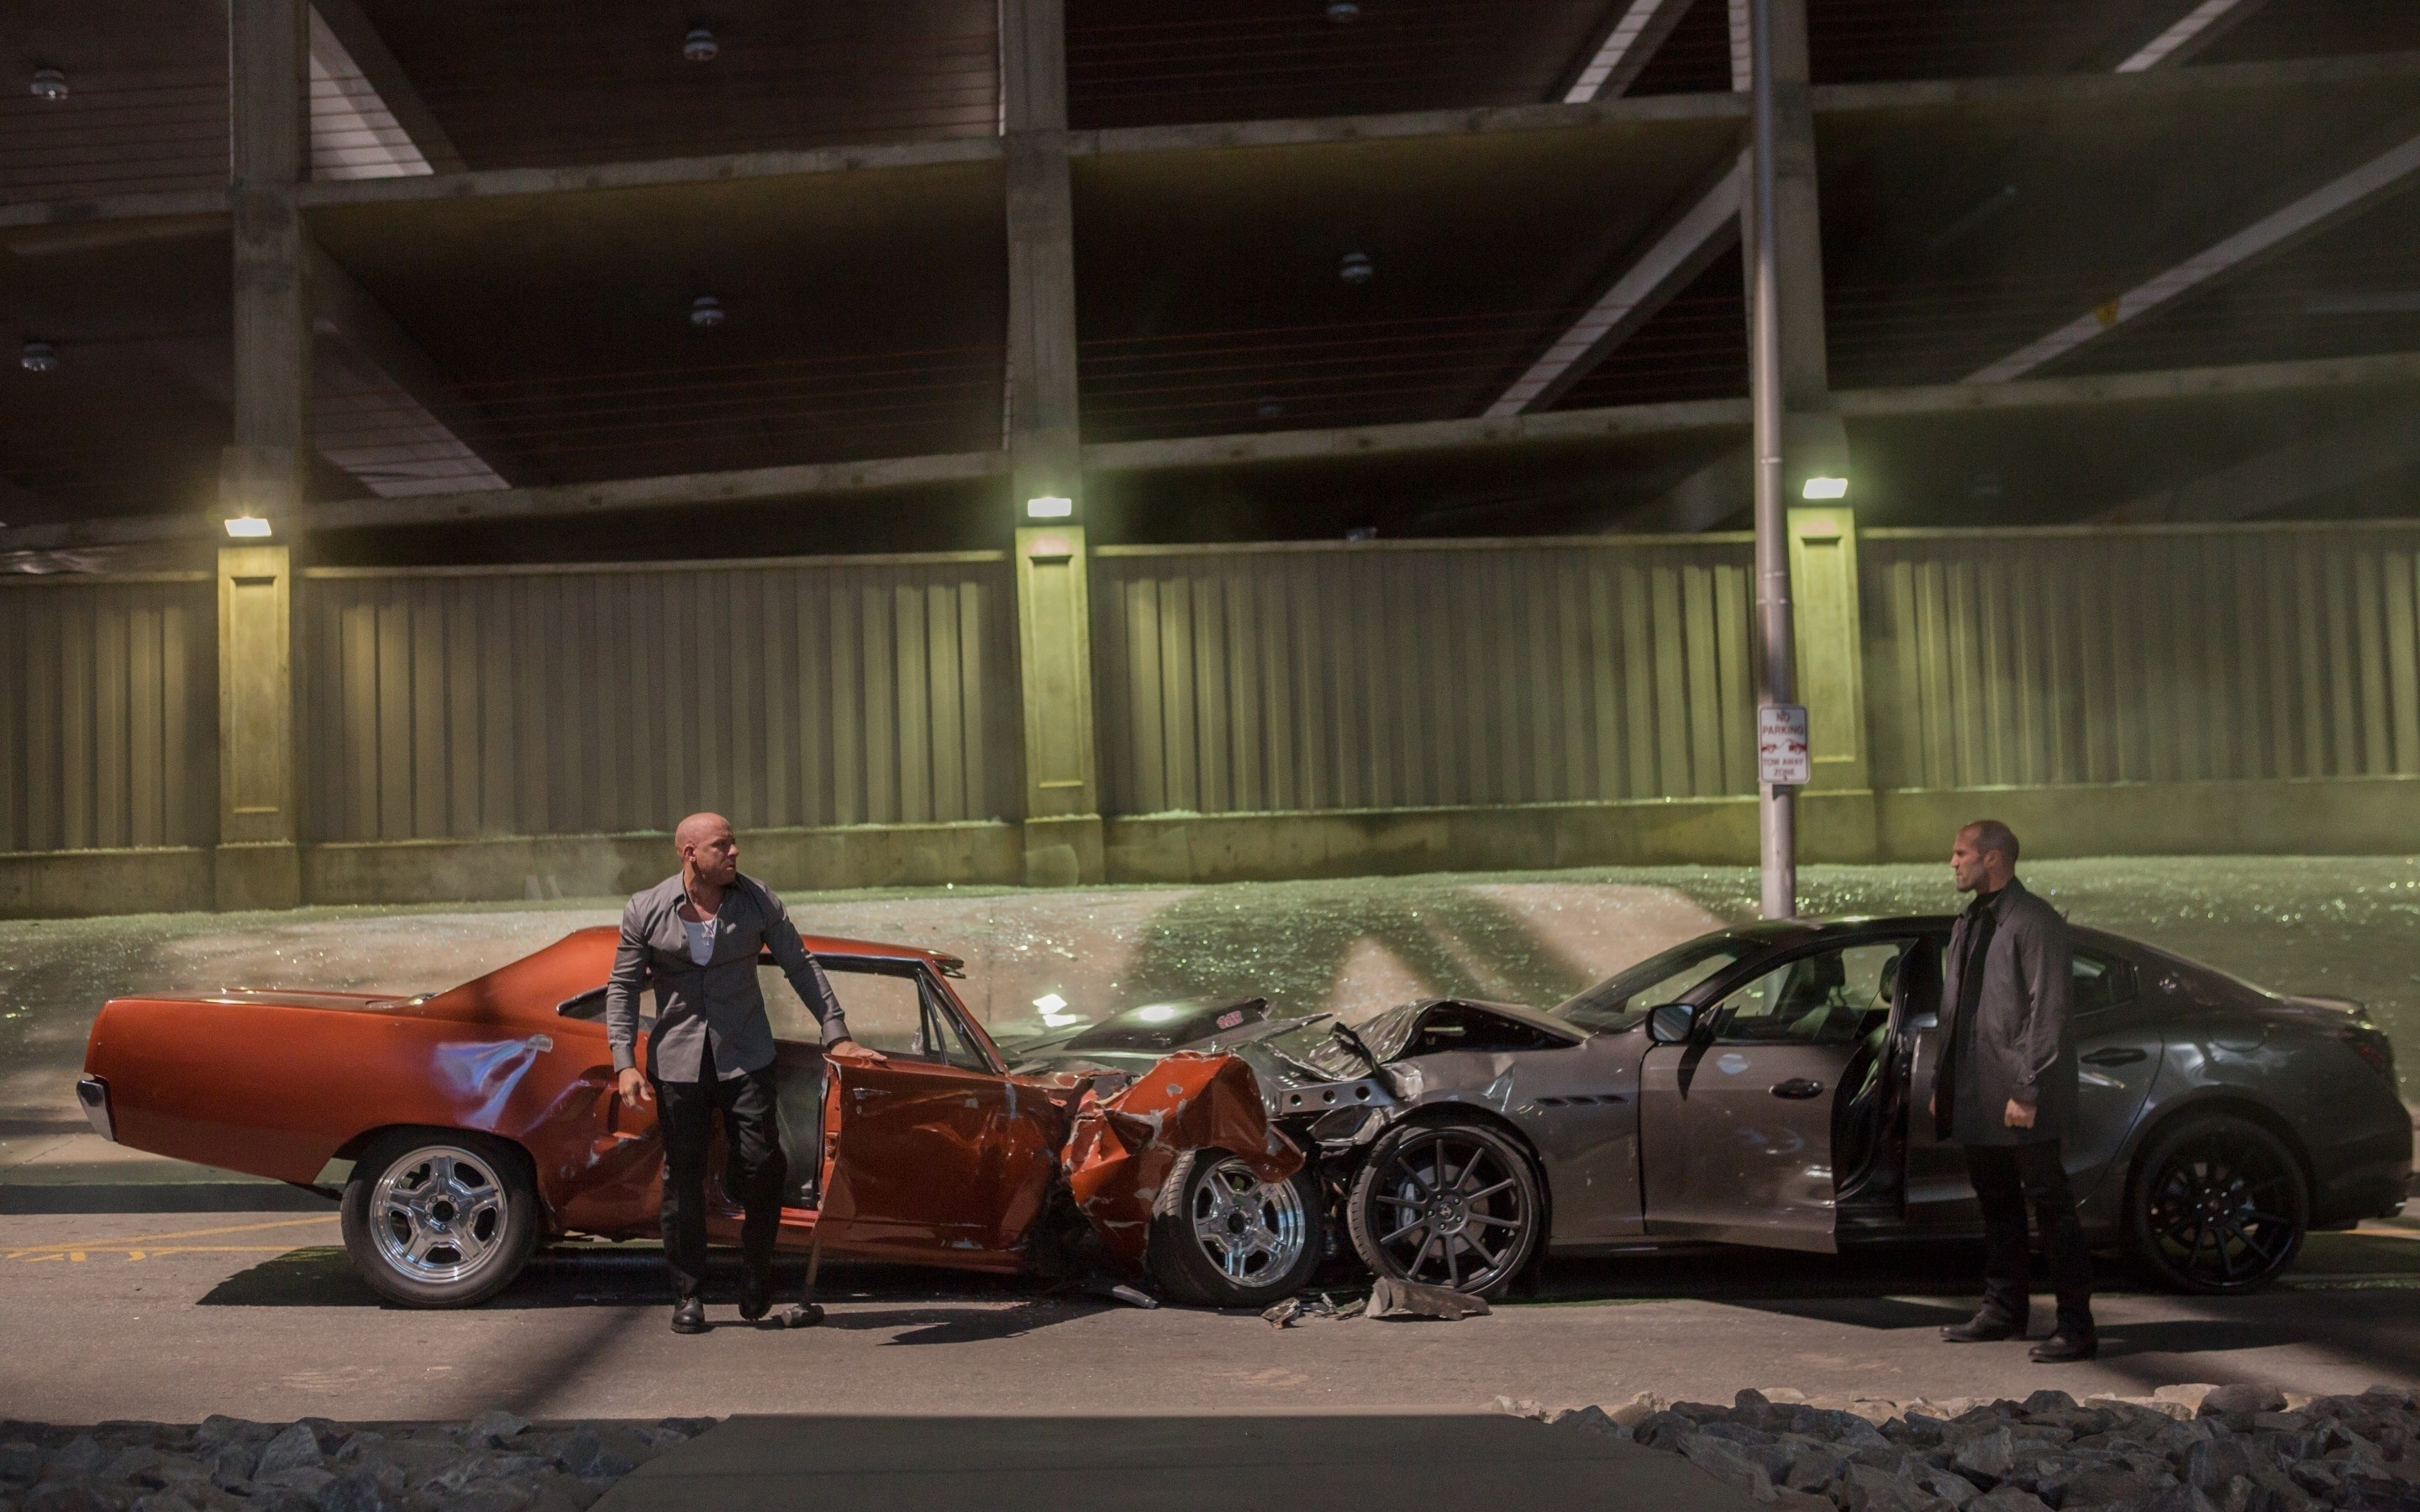 2880x1800 fast and furious movie scene HD Wallpaper